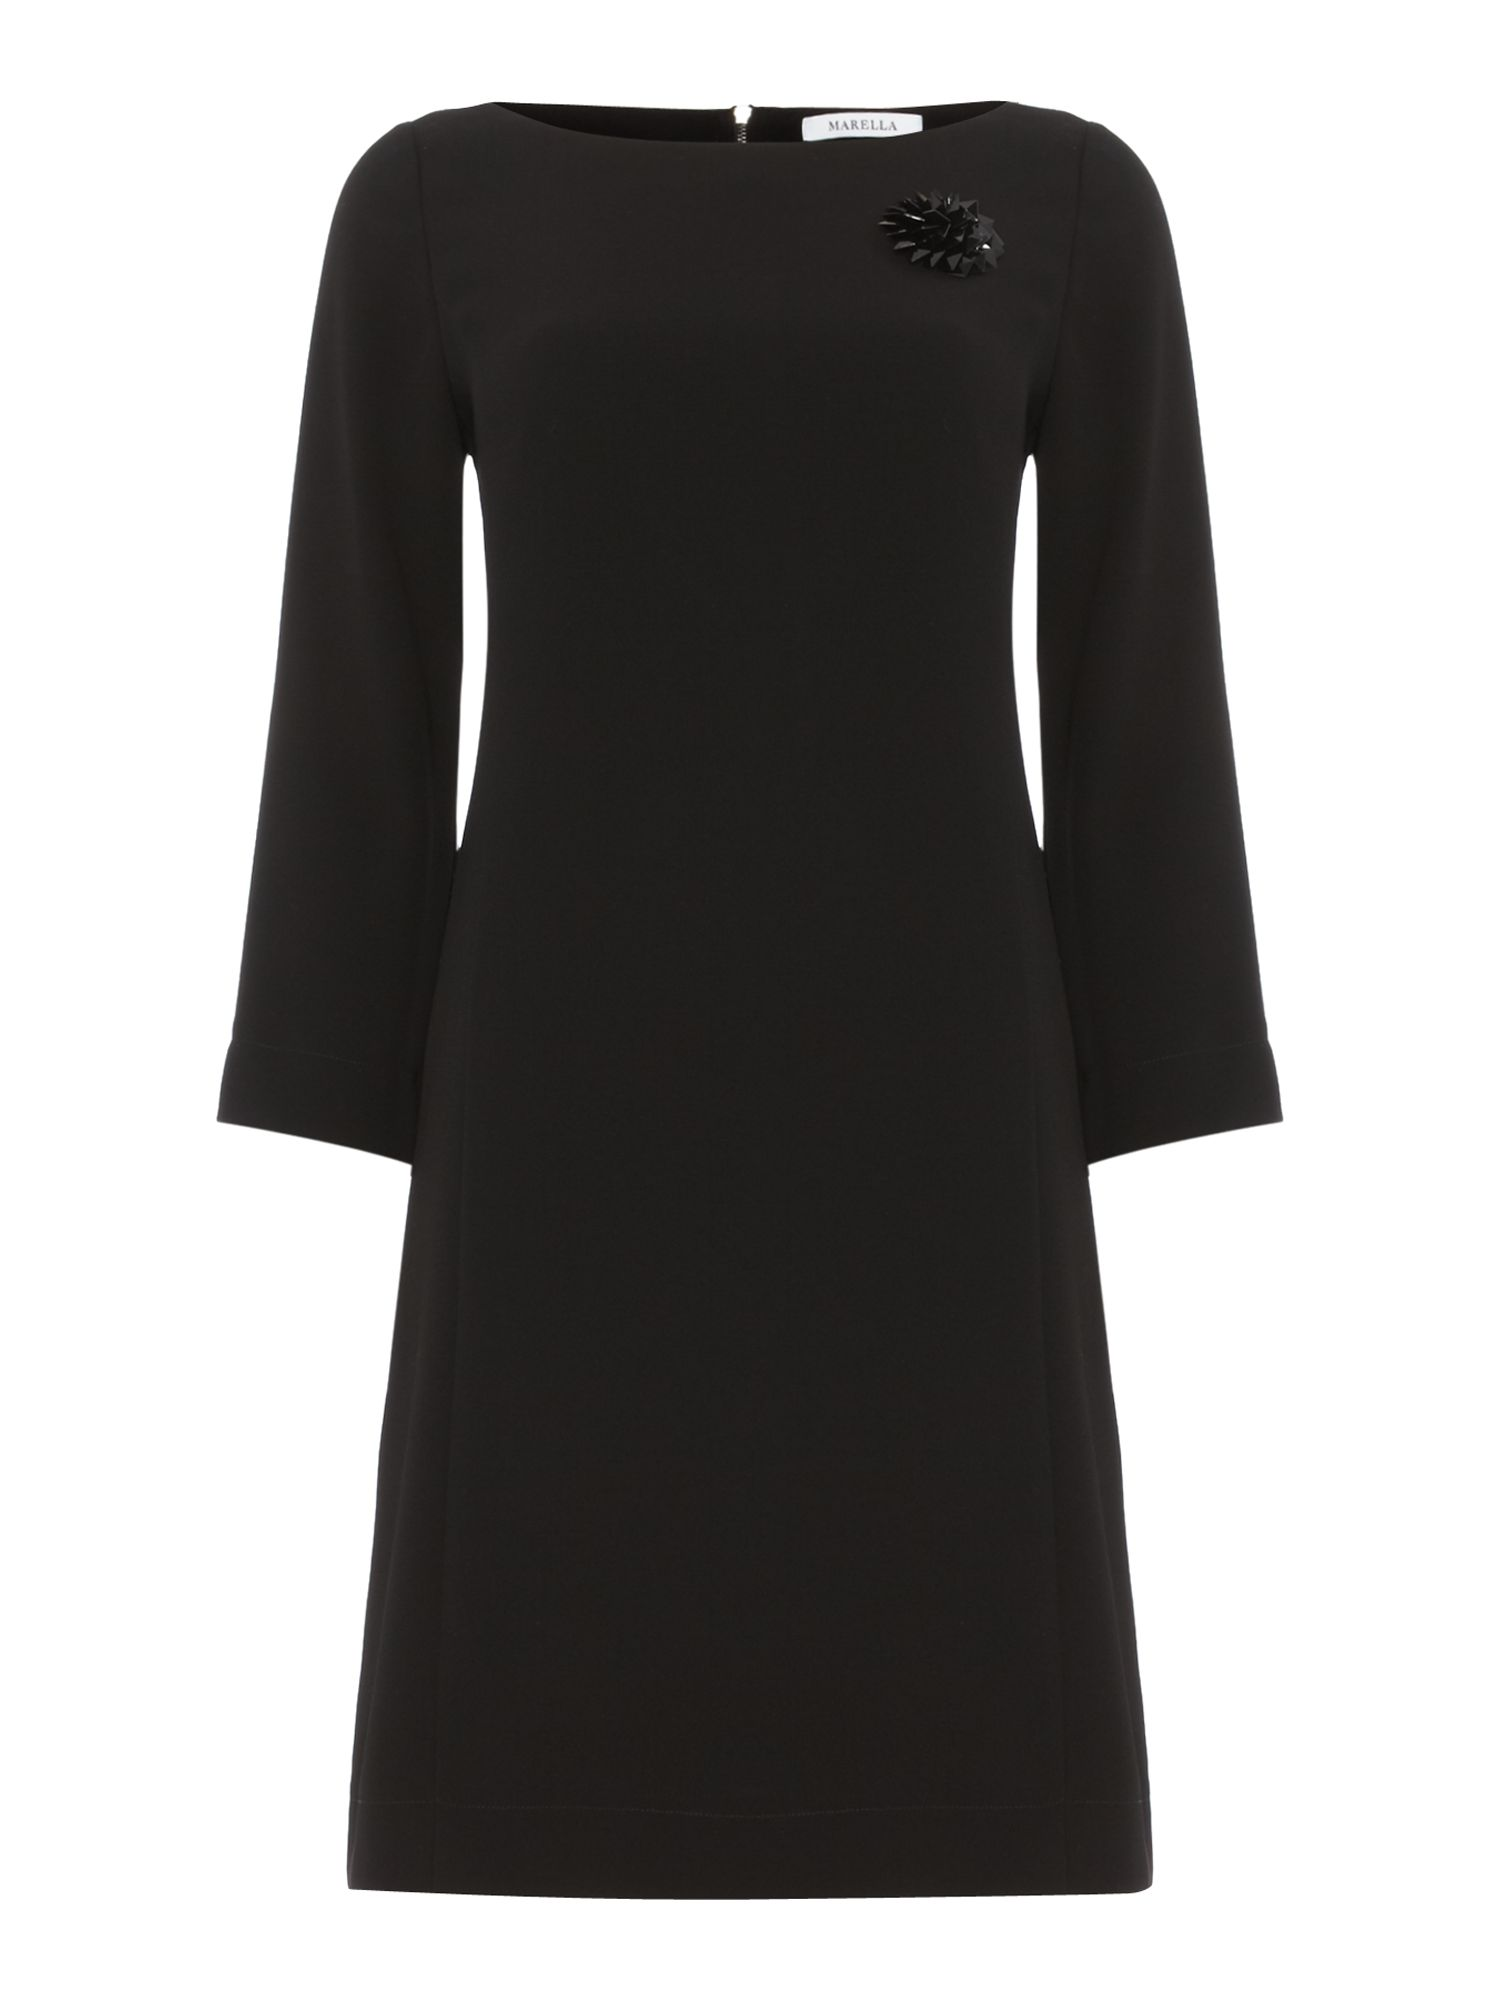 Stivale long sleeved shift dress with brooch